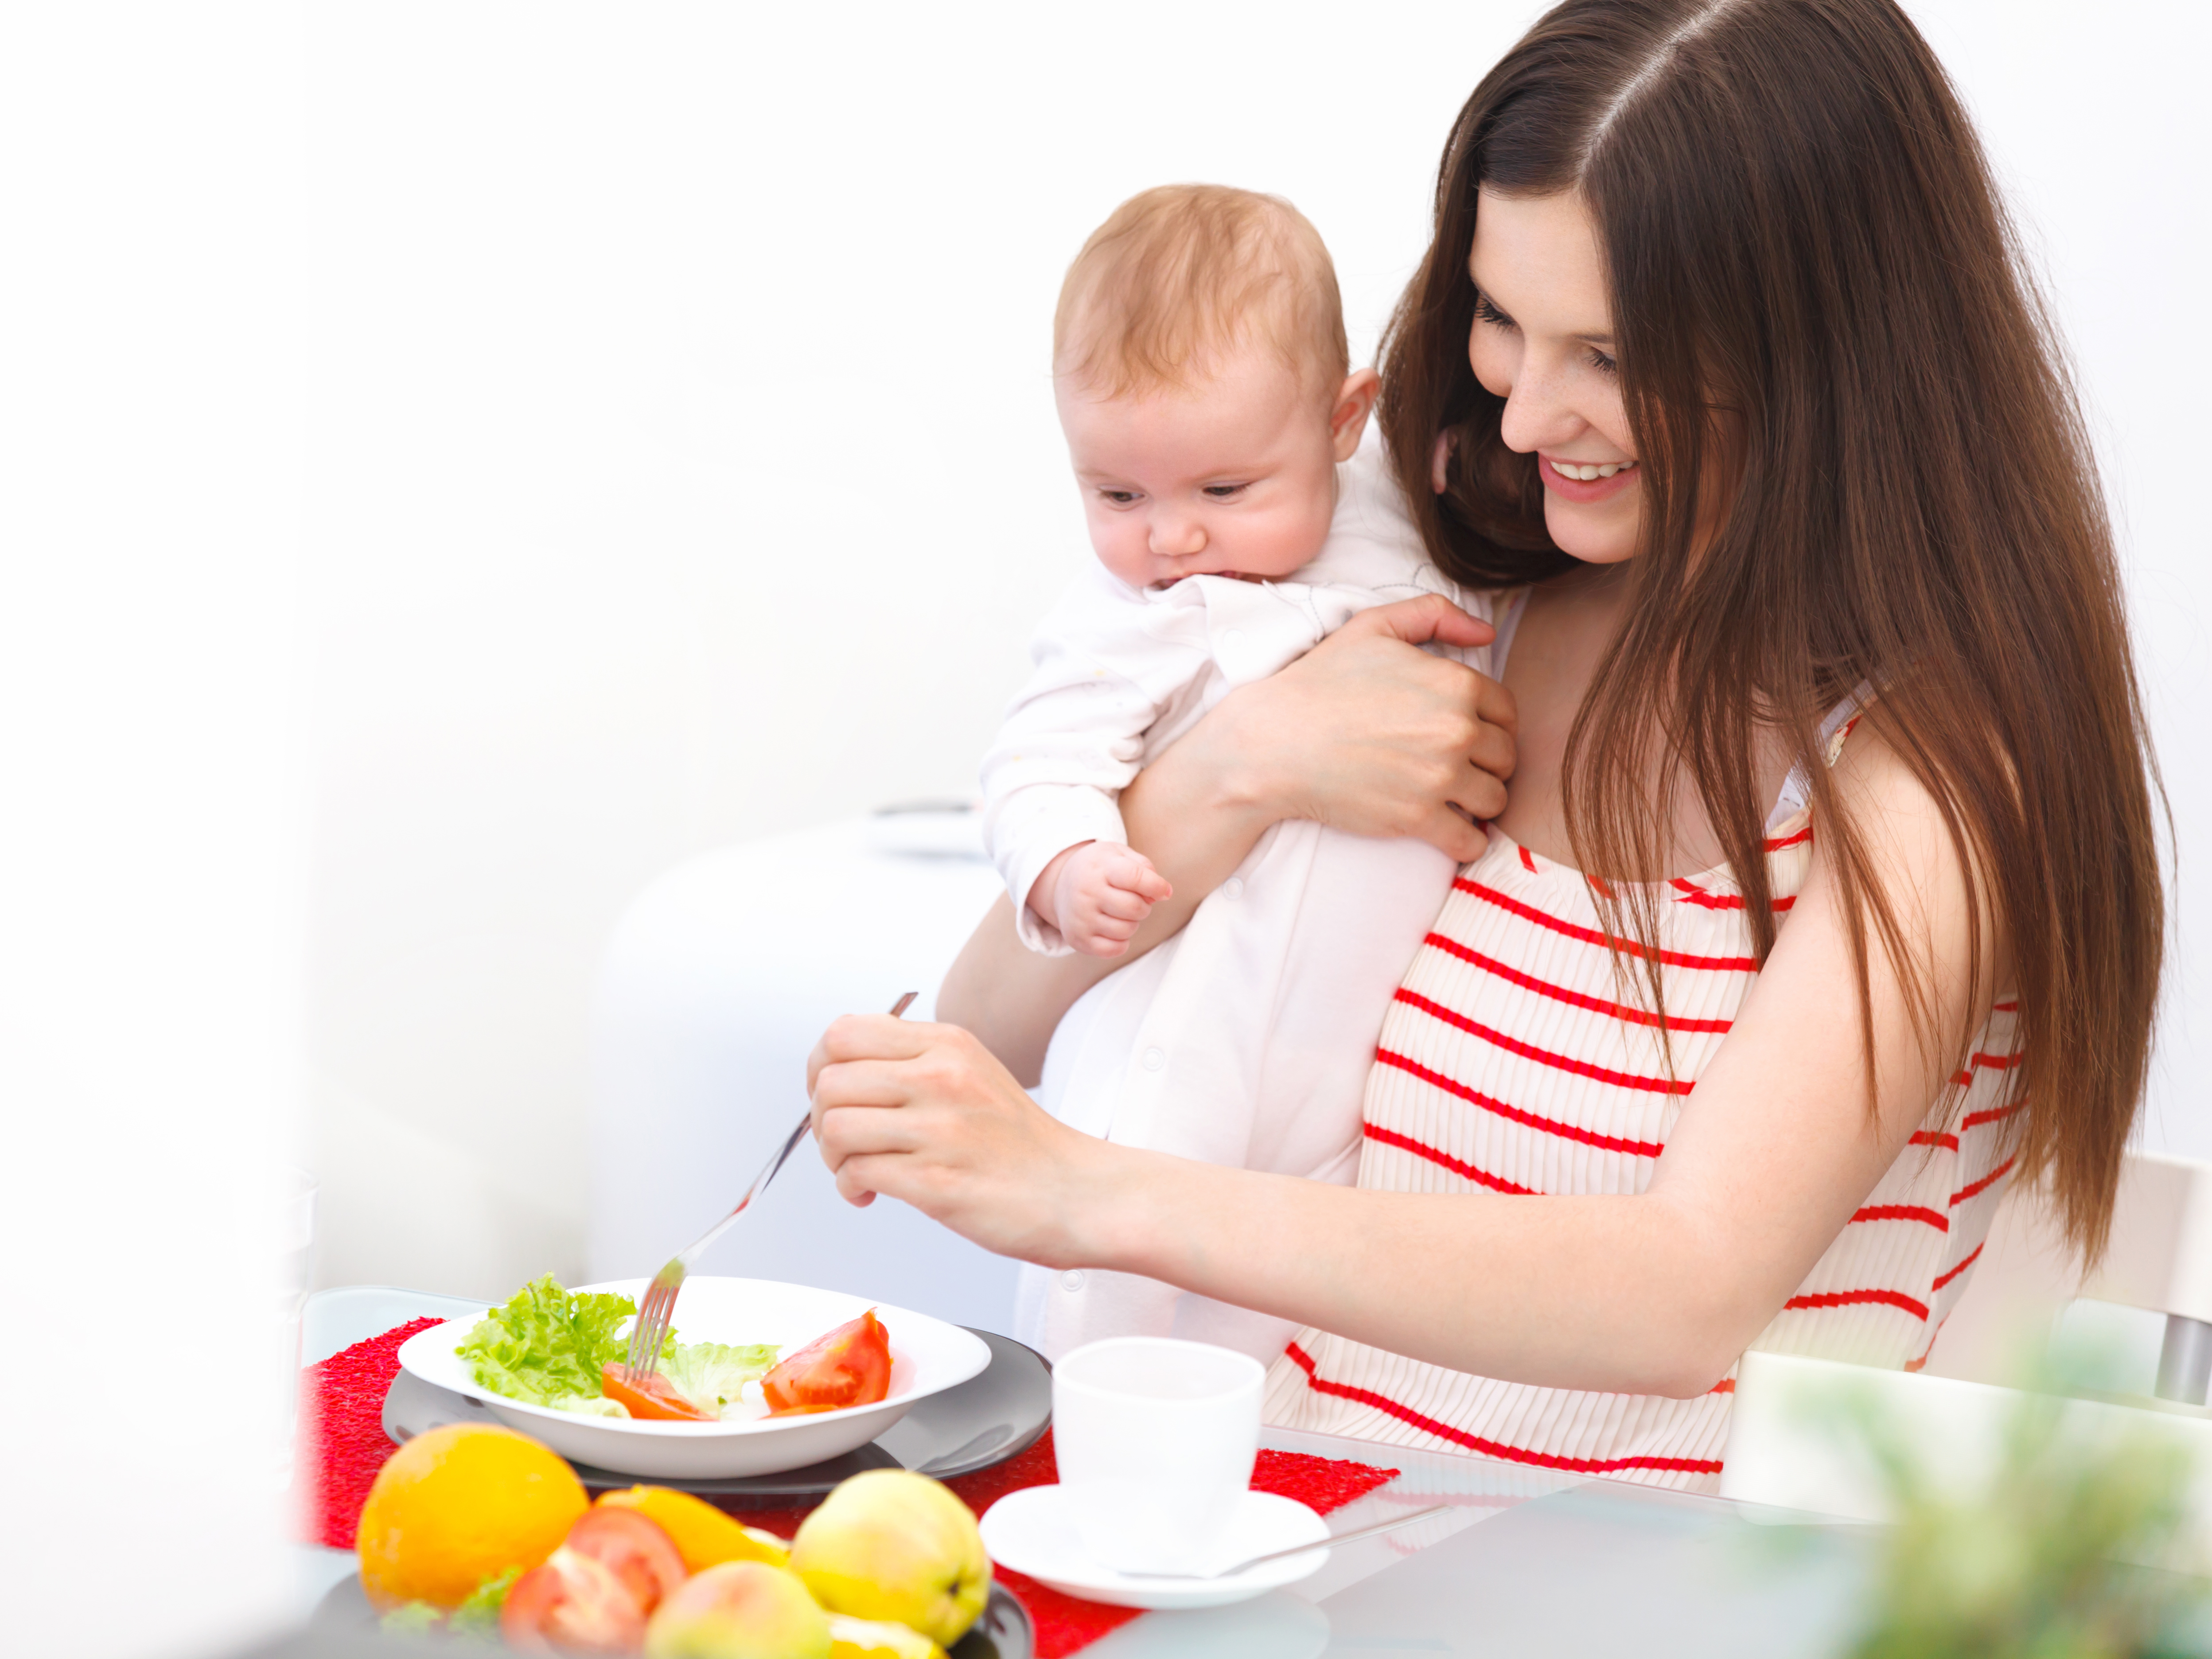 paleo baby benefits of the paleo diet for breastfeeding moms and